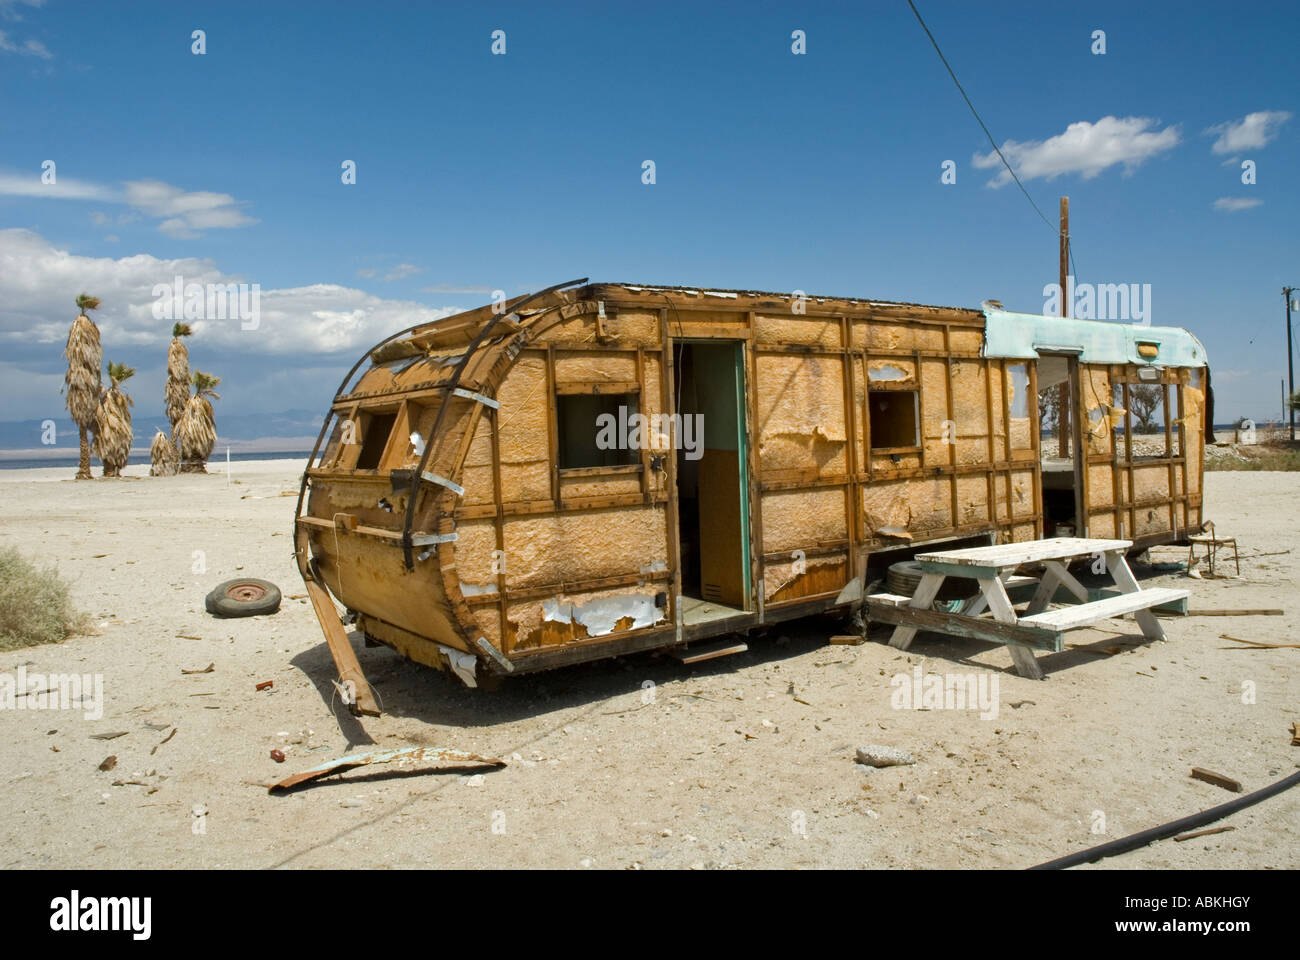 Exterior Of A Abandoned Mobile Home On The Shores Of The